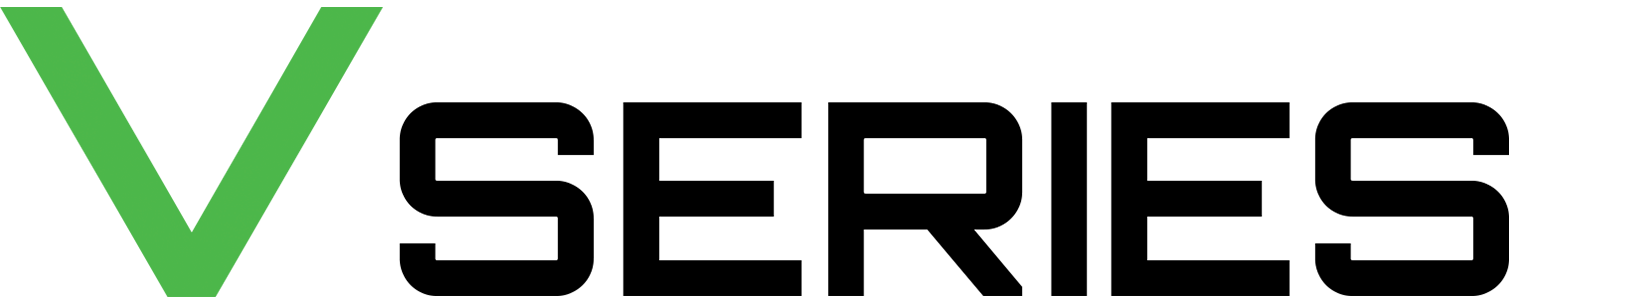 V Series Black Logo Transparent Background.png